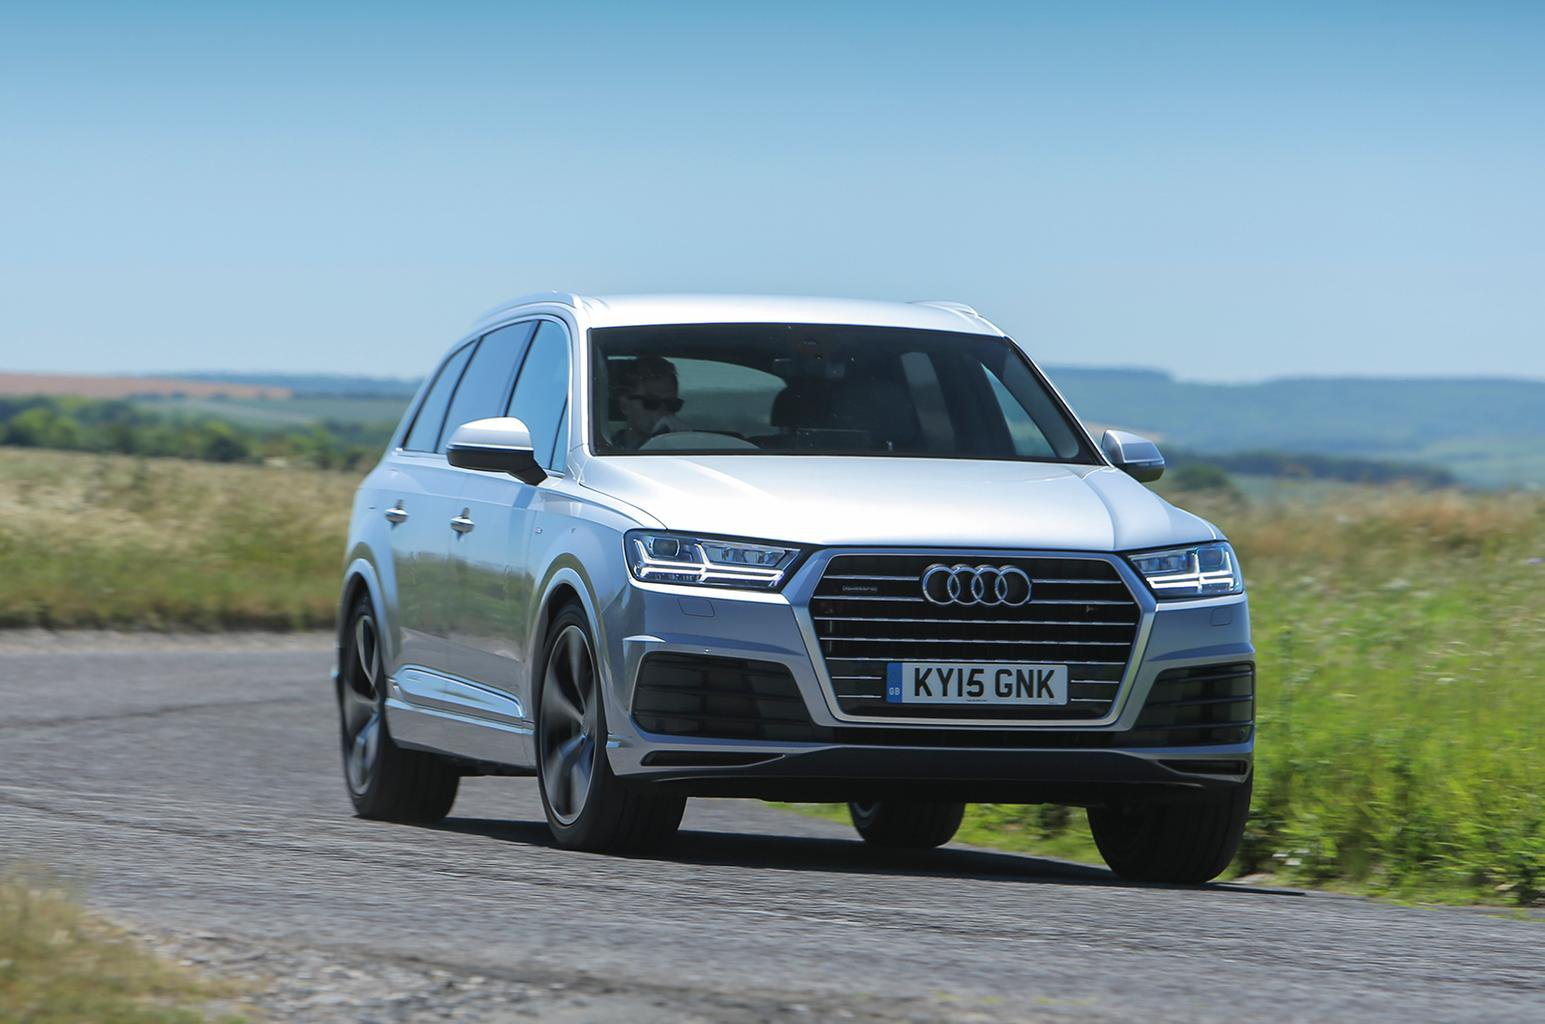 Used test: Audi Q7 vs Volvo XC90